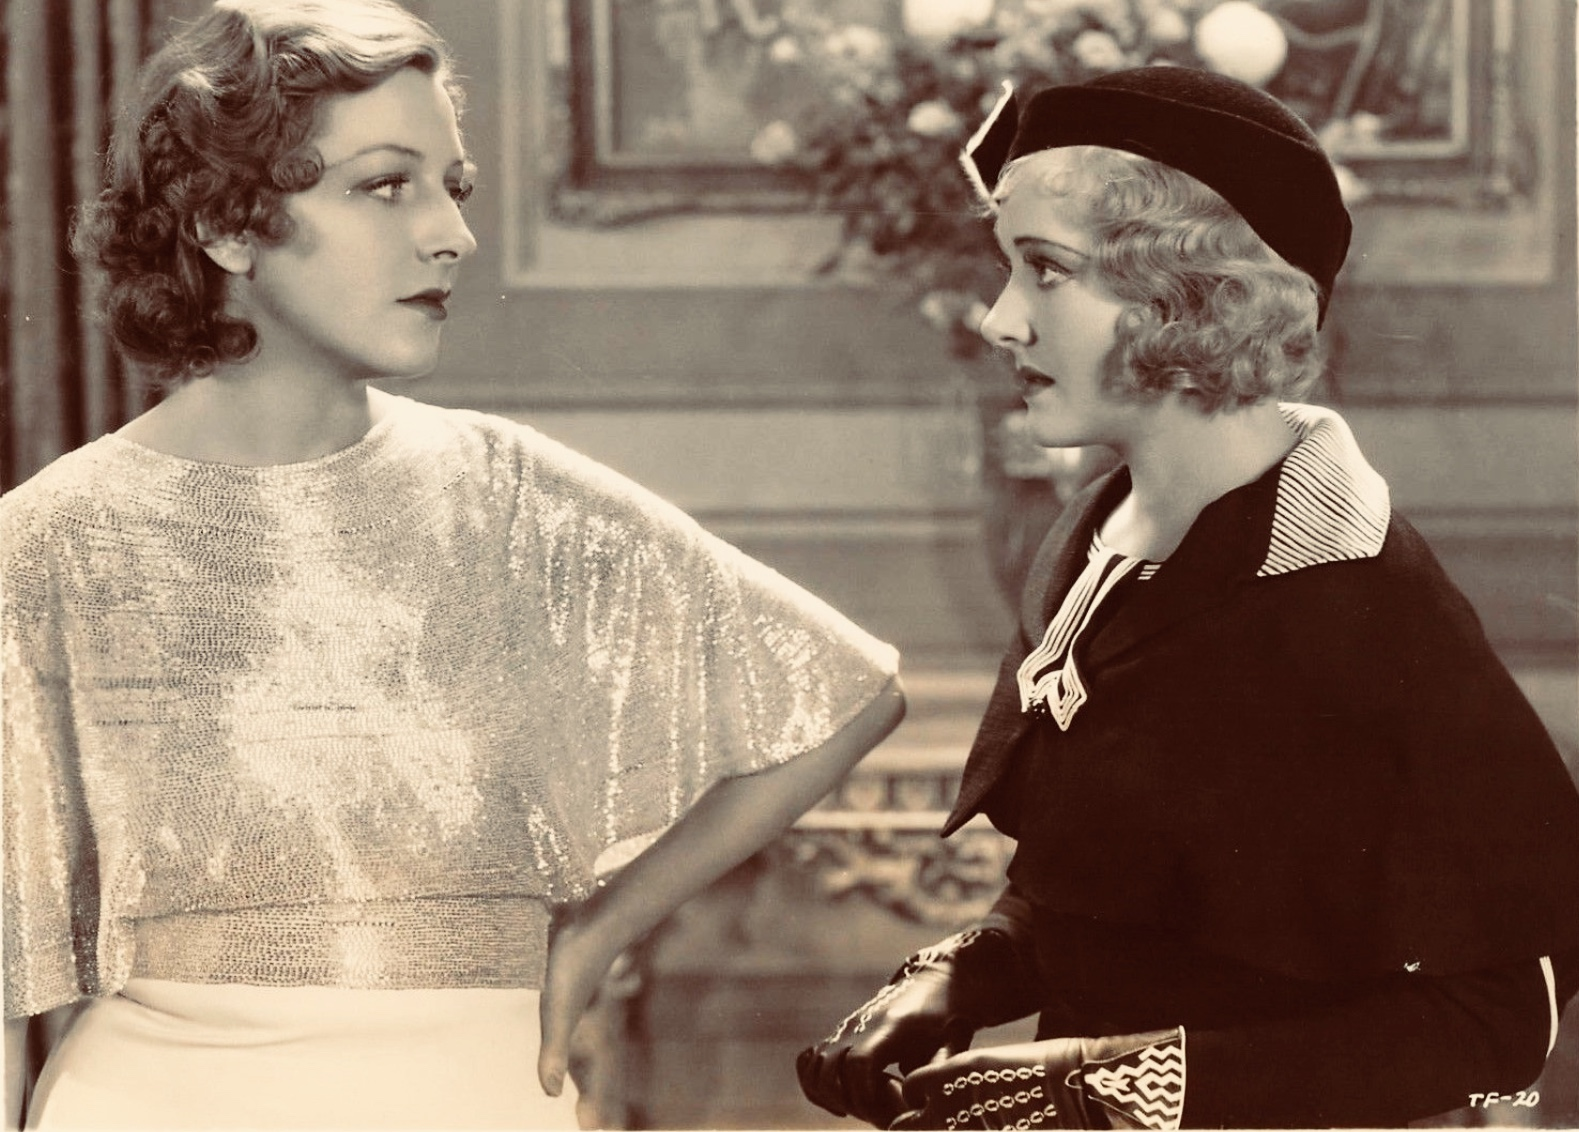 Gertrude Michael and Vivienne Osborne in Sailor Be Good (1933)